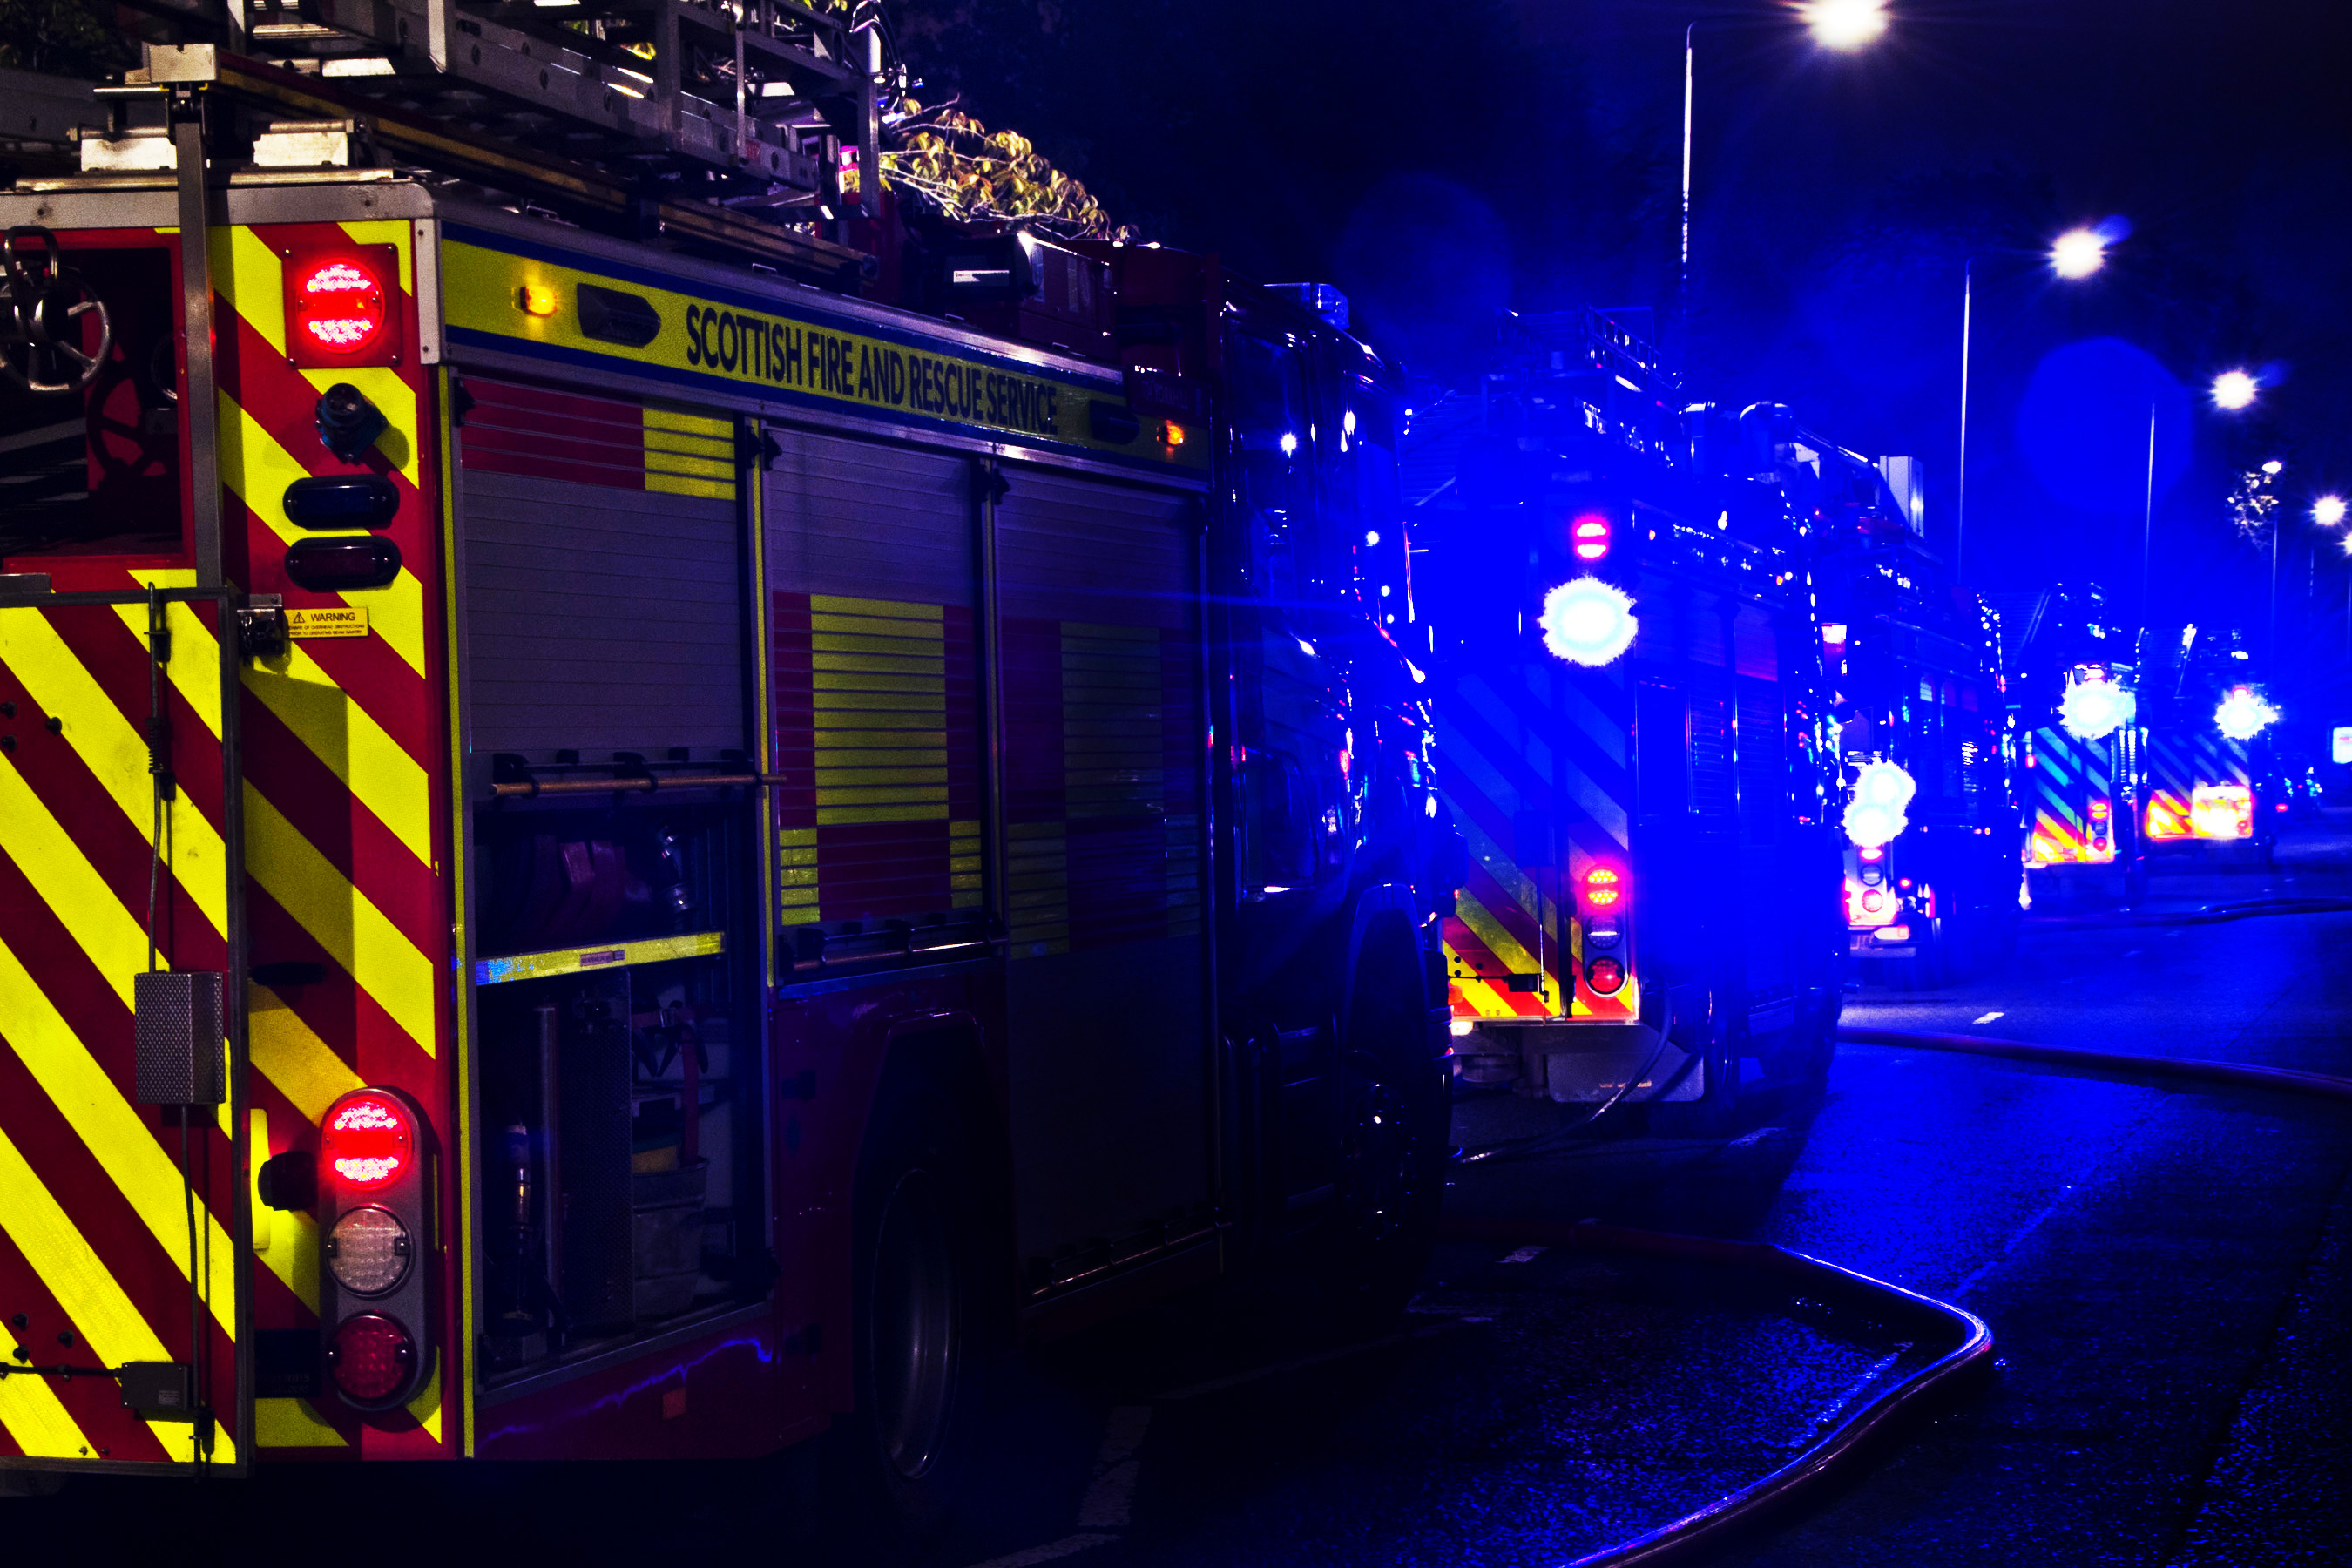 Fire-related casualties continue to fall in East Renfrewshire